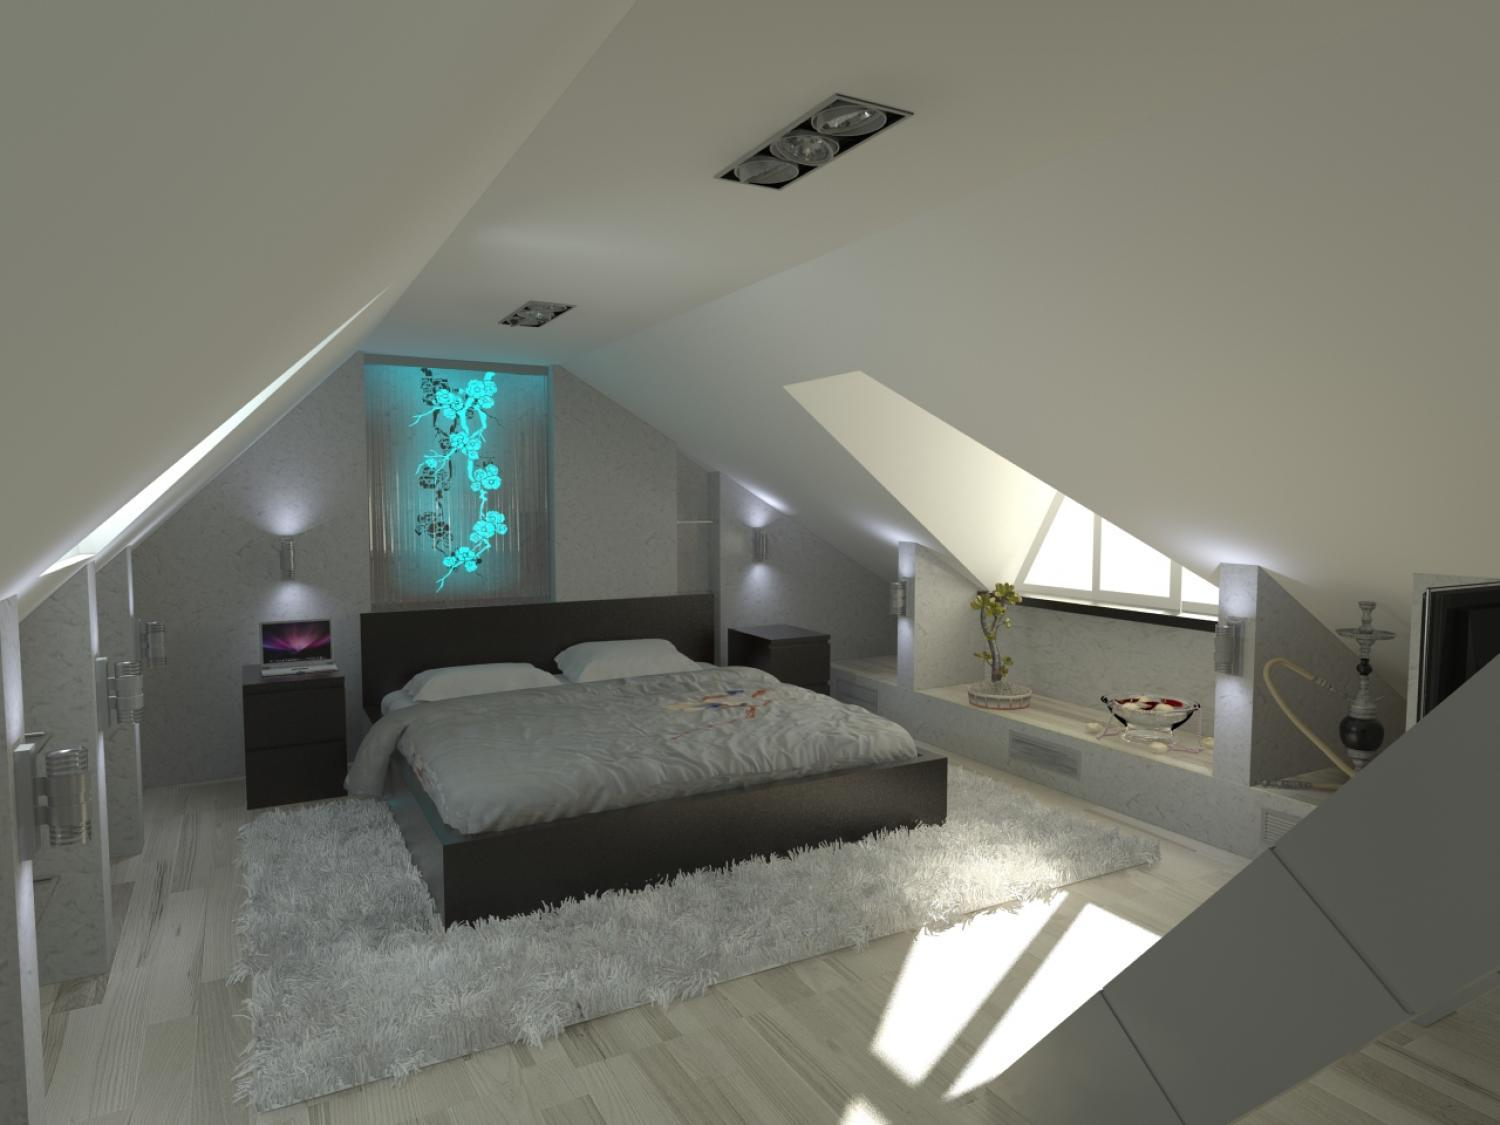 16 Small Attic Room Design Ideas Houz Buzz: an attic room